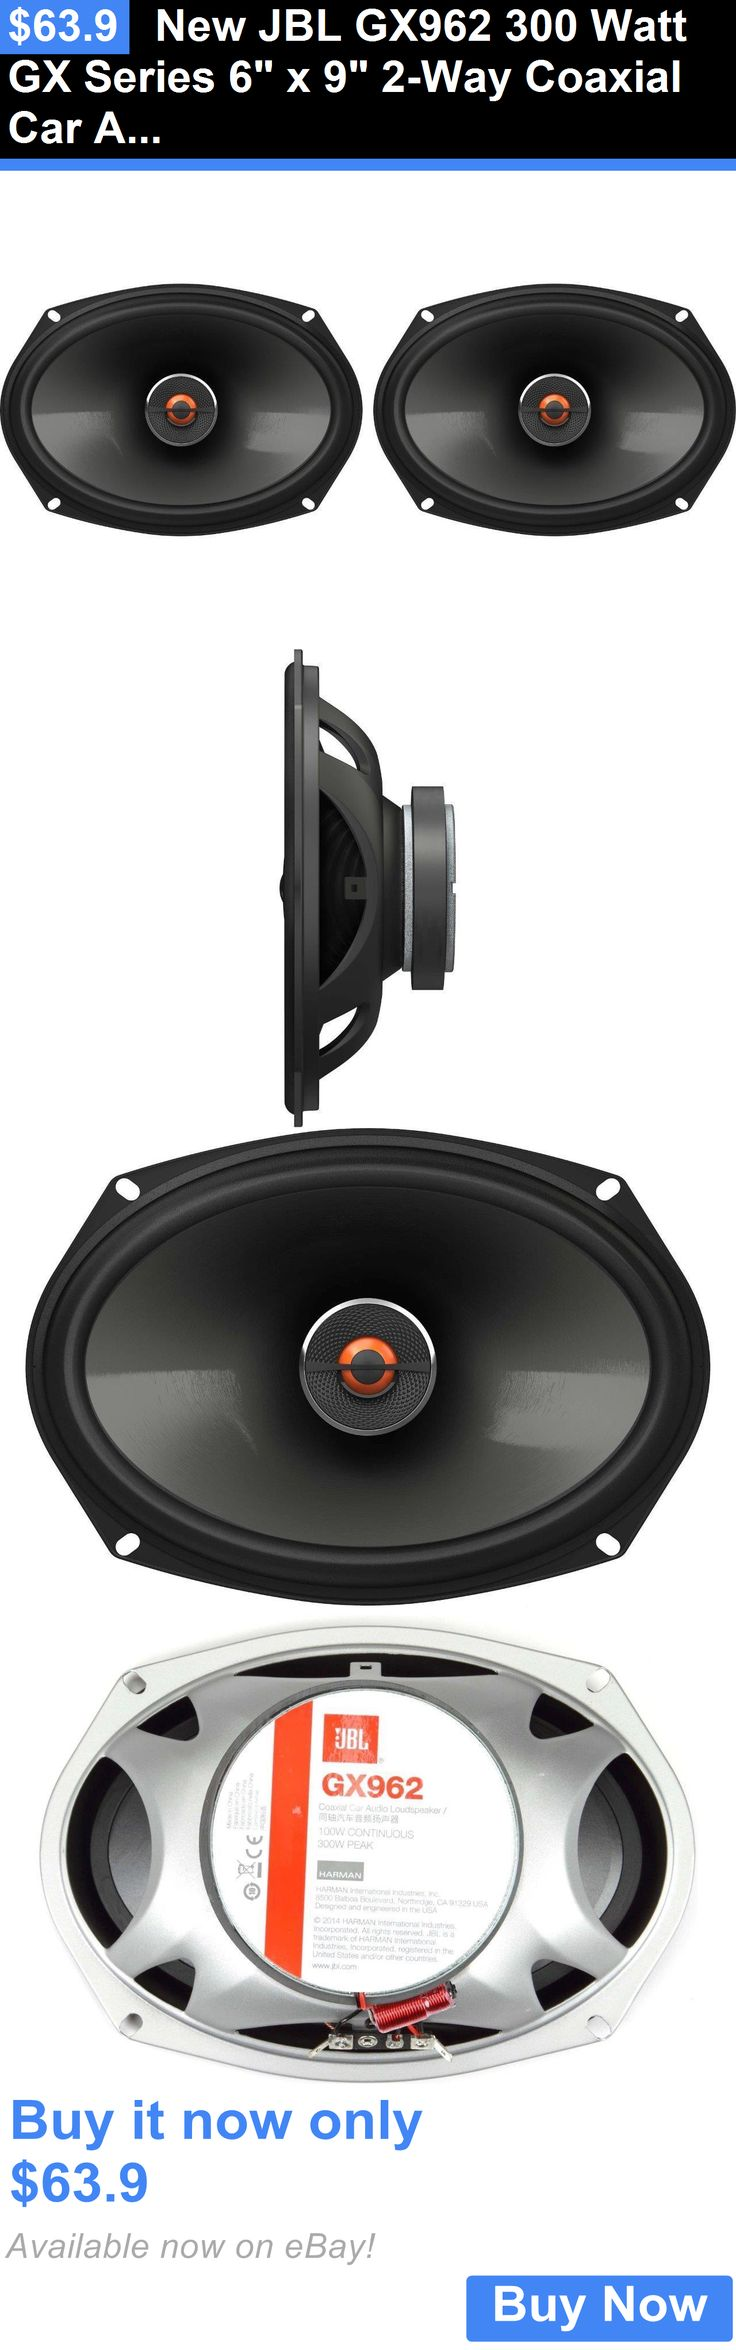 Need rap for my sirius receiver cadillac electronic modifications - Car Speakers And Speaker Systems New Jbl Gx962 300 Watt Gx Series 6 X 9